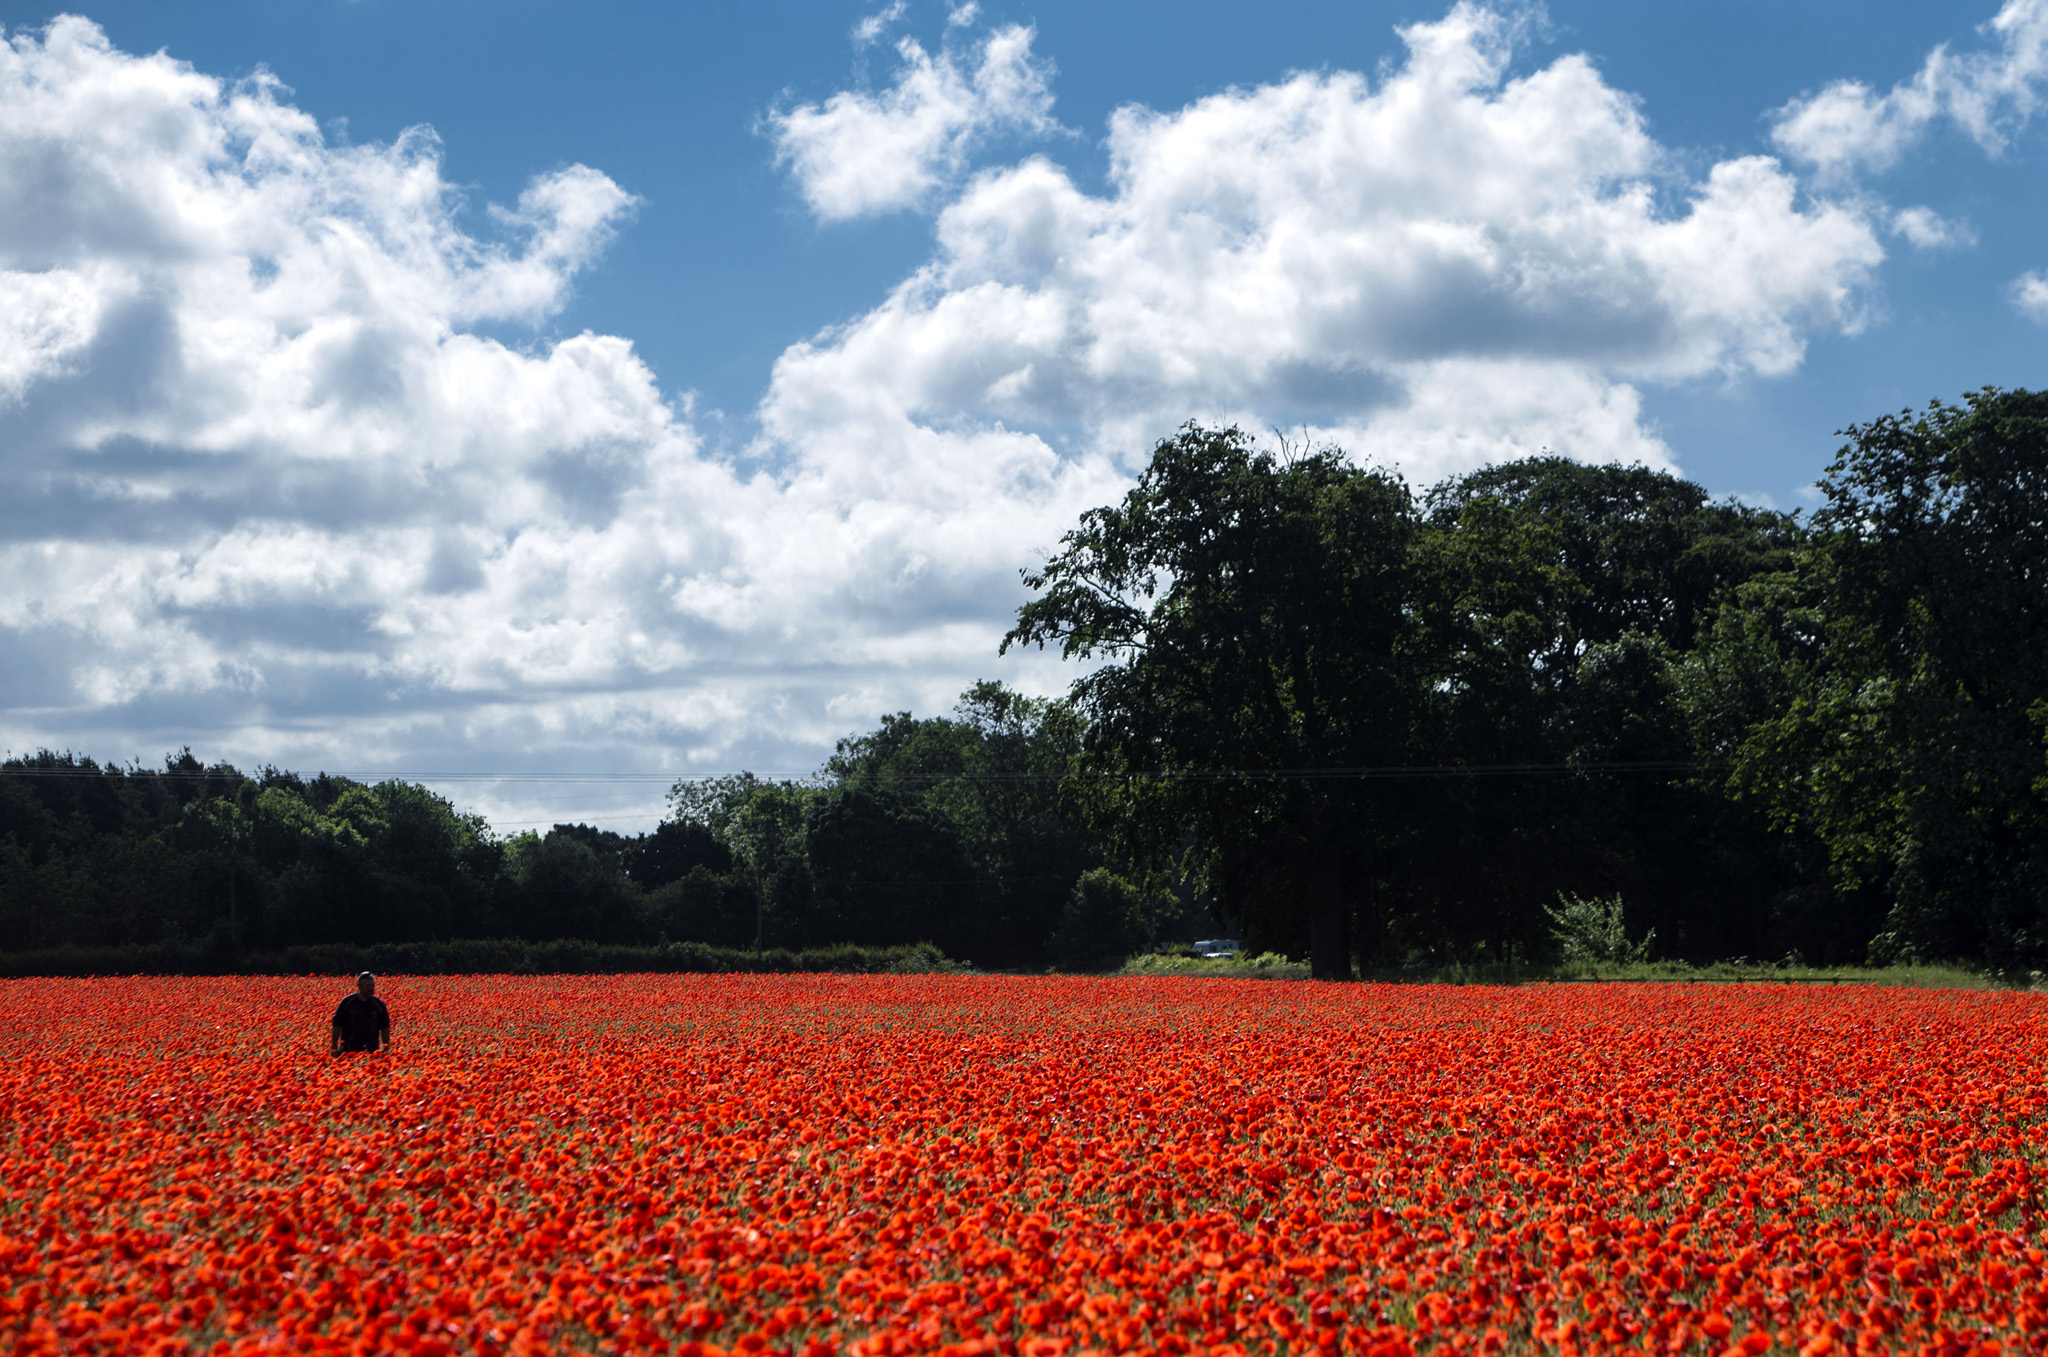 A poppy field near York as the UK and France prepare to commemorate the Battle of the Somme. PRESS ASSOCIATION Photo. Picture date: Thursday June 30, 2016.  The Queen and senior royals will lead the nation in remembrance to mark the centenary of the Battle of the Somme. Events across the UK and in France will commemorate the start of the battle on July 1 1916, a day that became the bloodiest in British military history with almost 20,000 dead. See PA story HERITAGE Somme. Photo credit should read: Danny Lawson/PA Wire